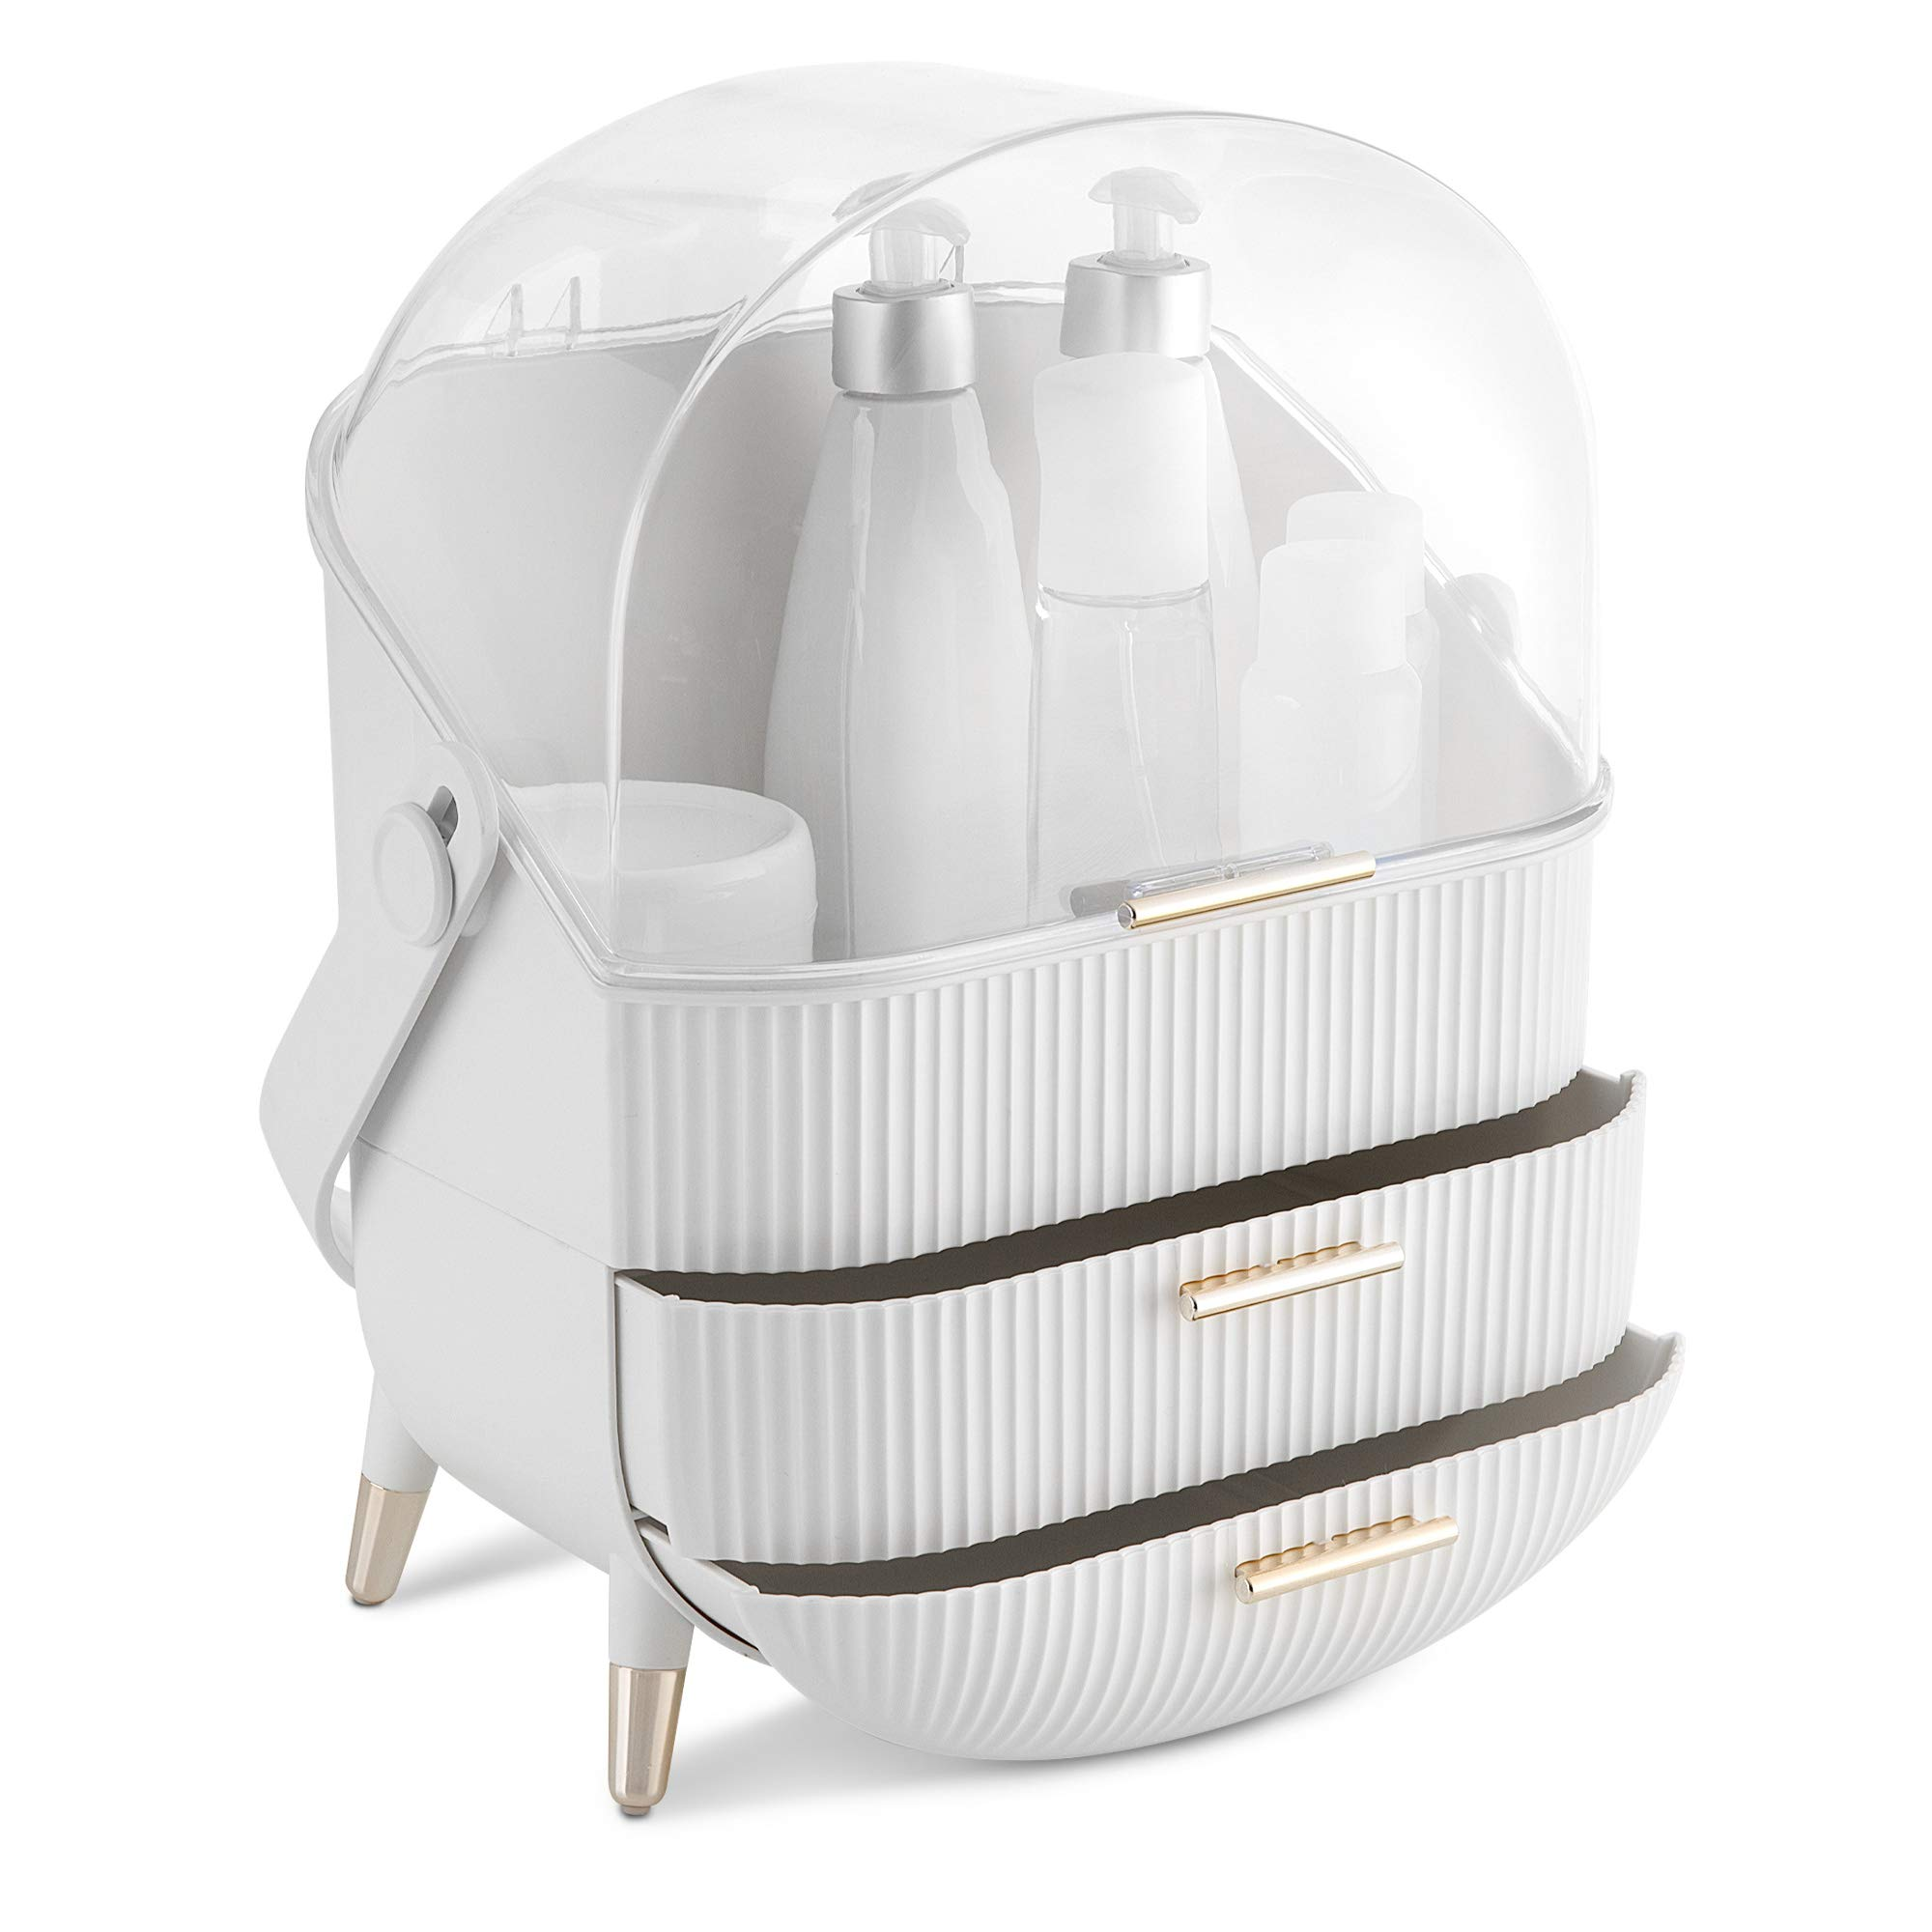 Navaris Makeup Organizer Storage Box - Cosmetics, Skincare and Beauty Case with Clear Lid Display and 2 Drawers - Bathroom Counter or Vanity - White